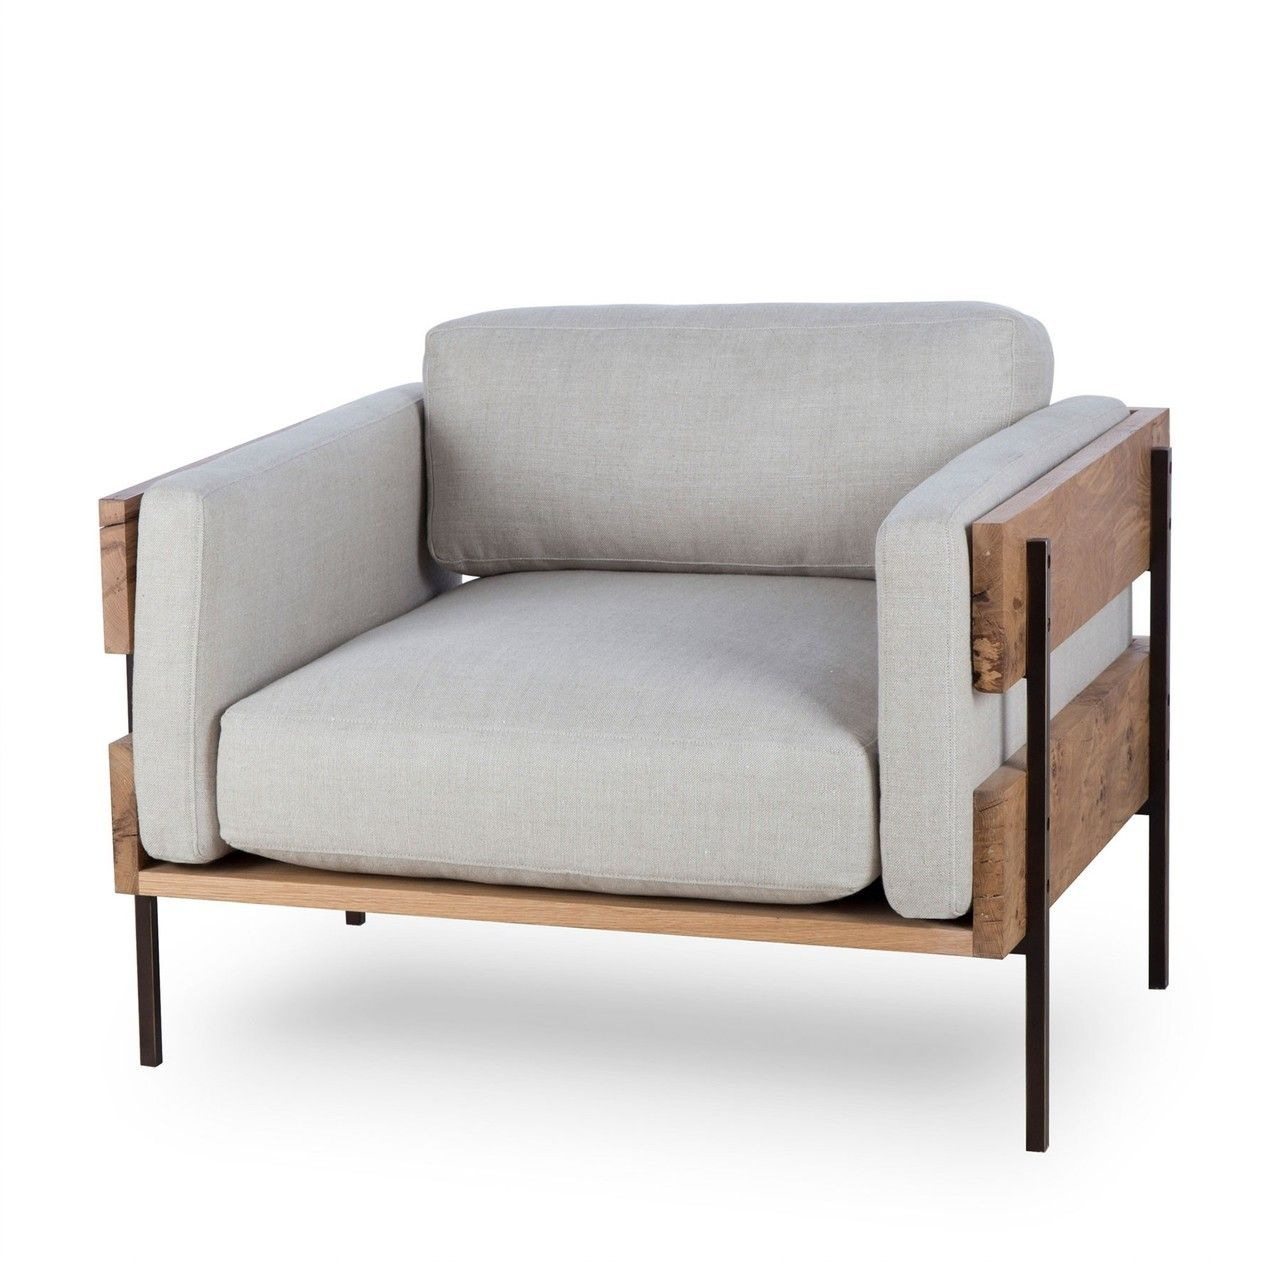 Stylus Made To Order Sofas Hand Built Sofas Couches For Sale Sofa